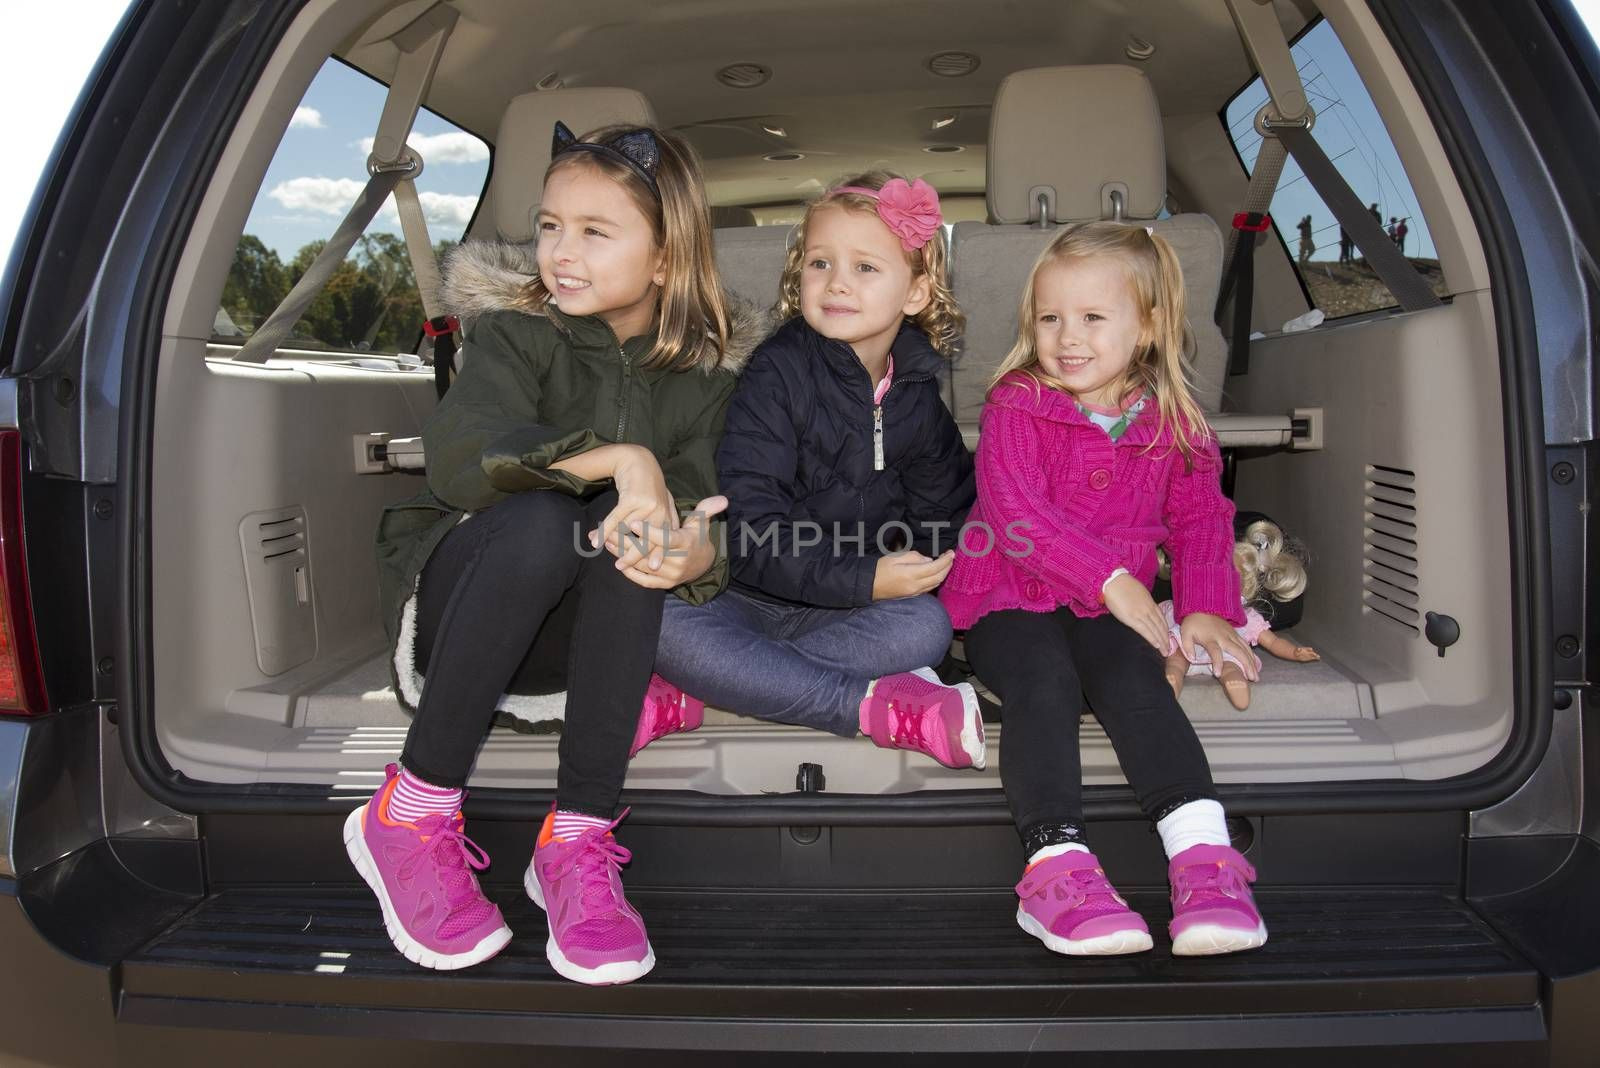 Three young girls sitting in the trunk of a car